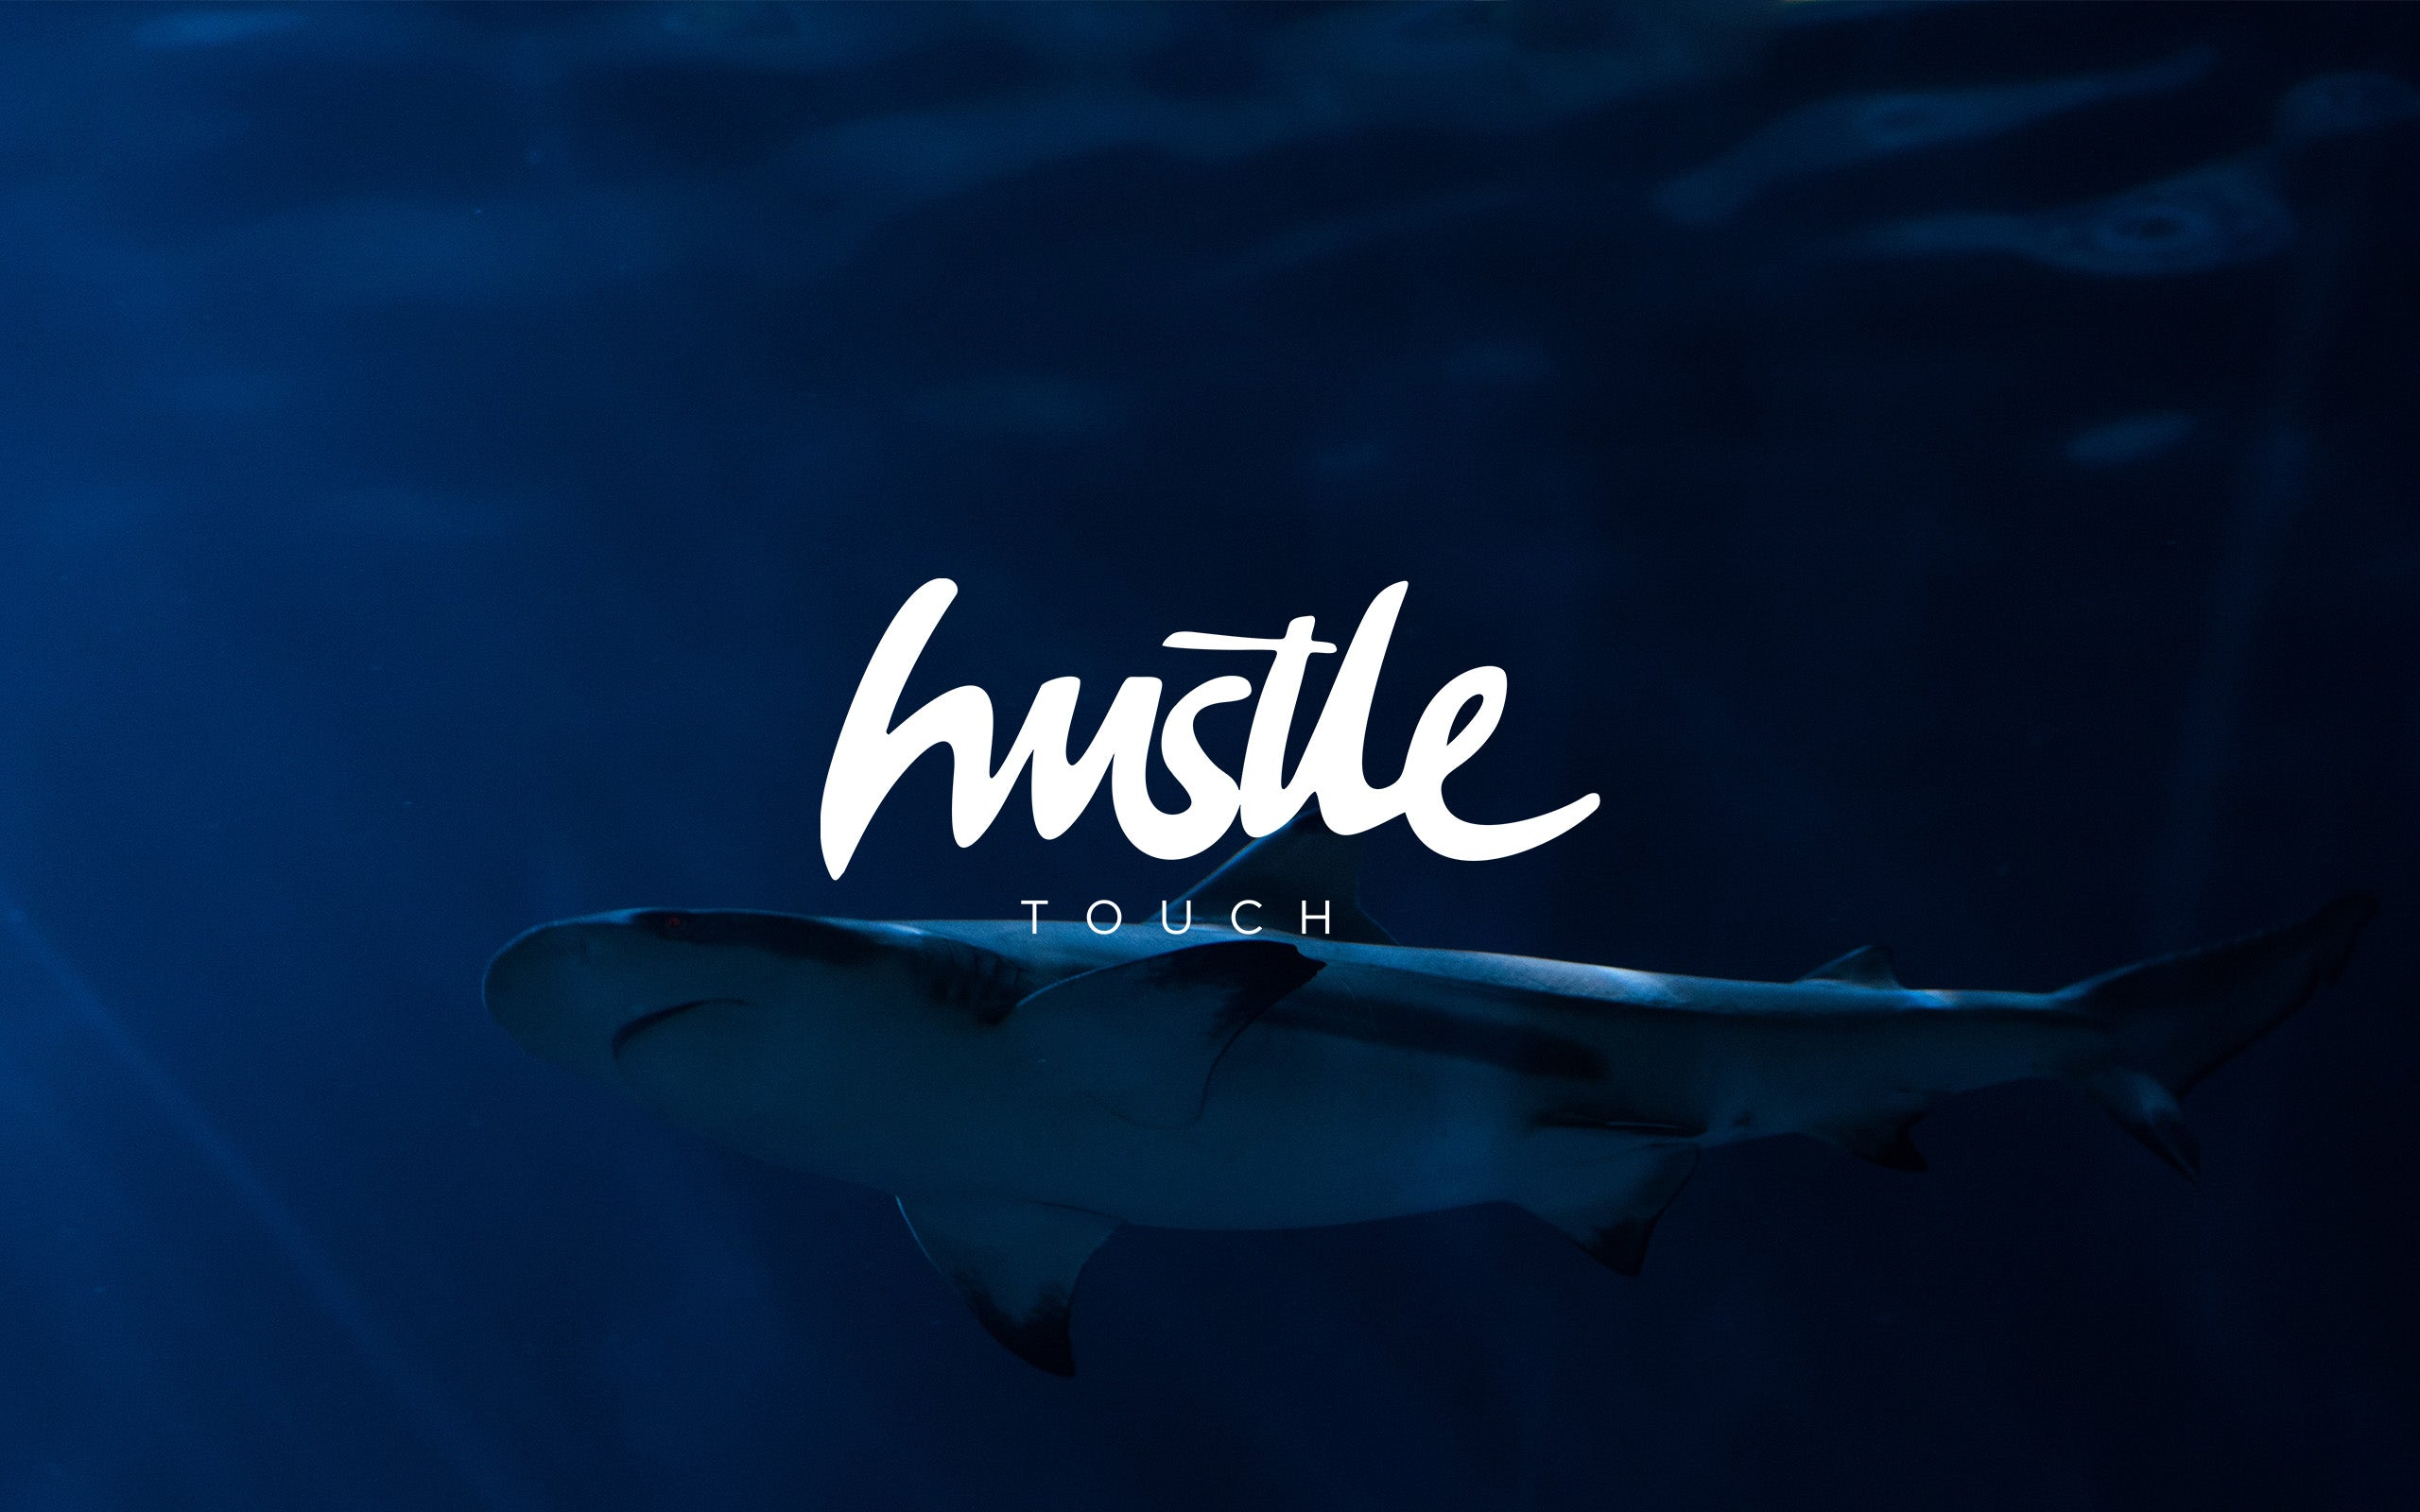 Hustle Touch Wallpaper 030 - Hustle Touch